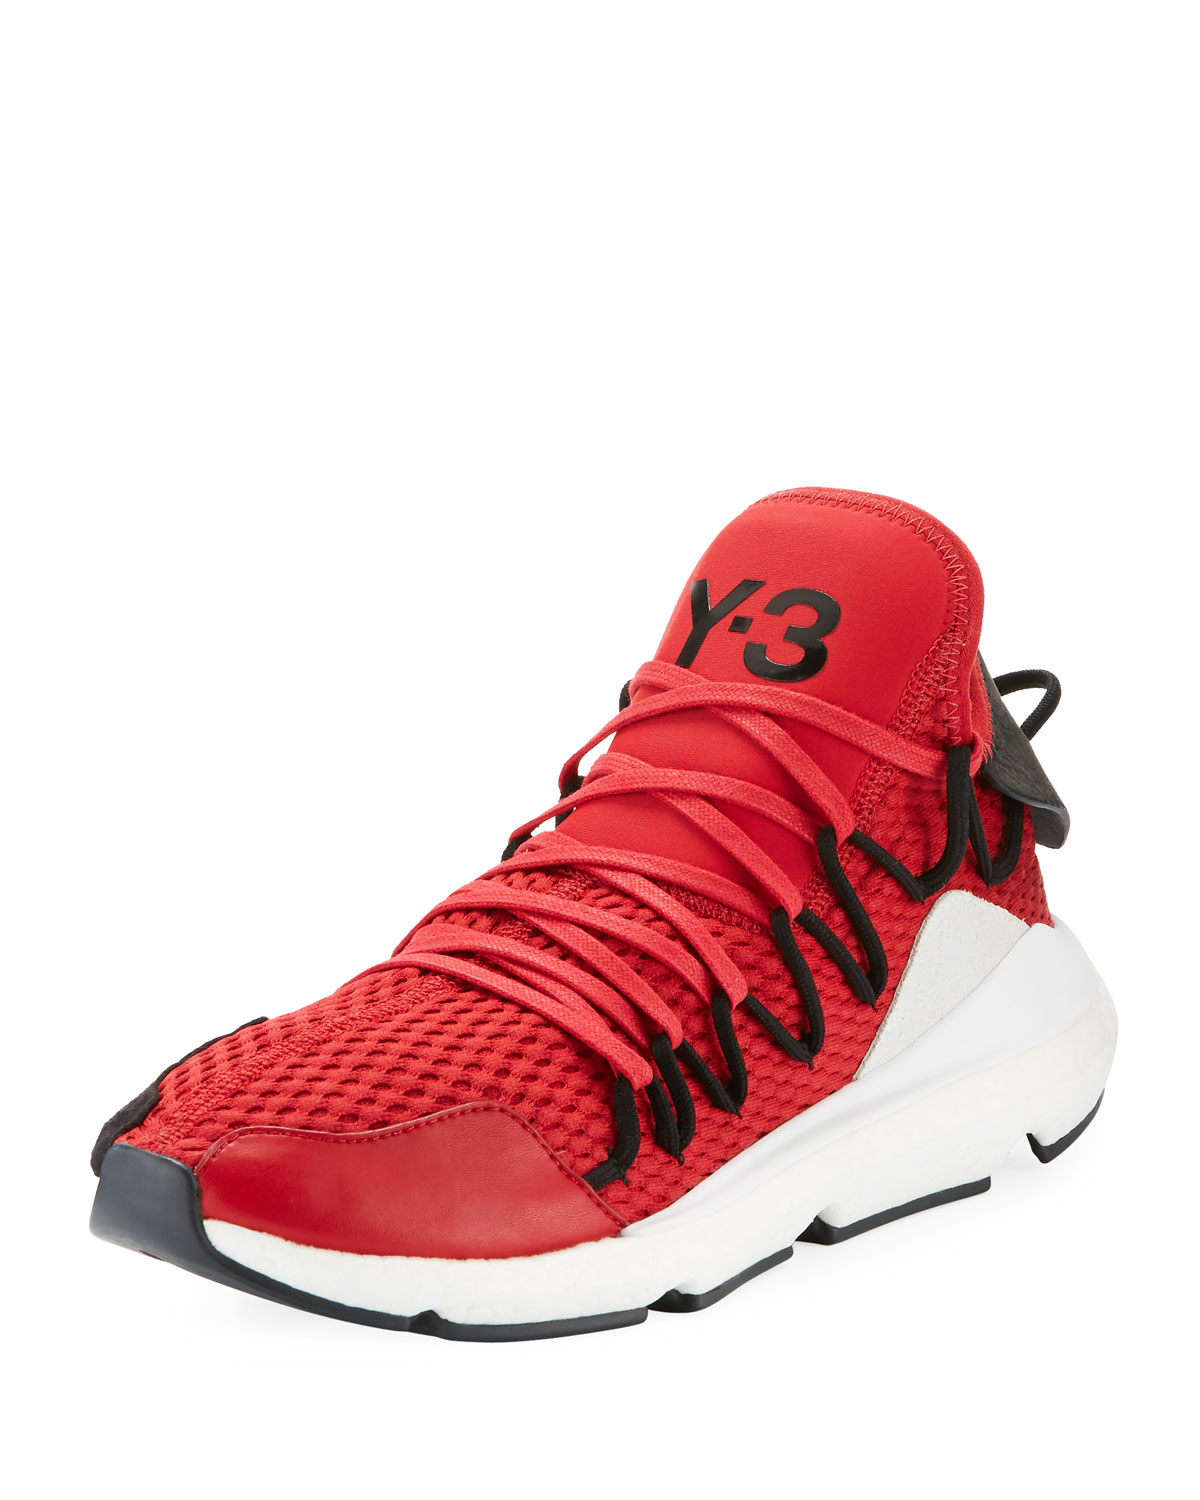 ac222ca05 Y-3 Men s Kusari Boost™ Sneakers